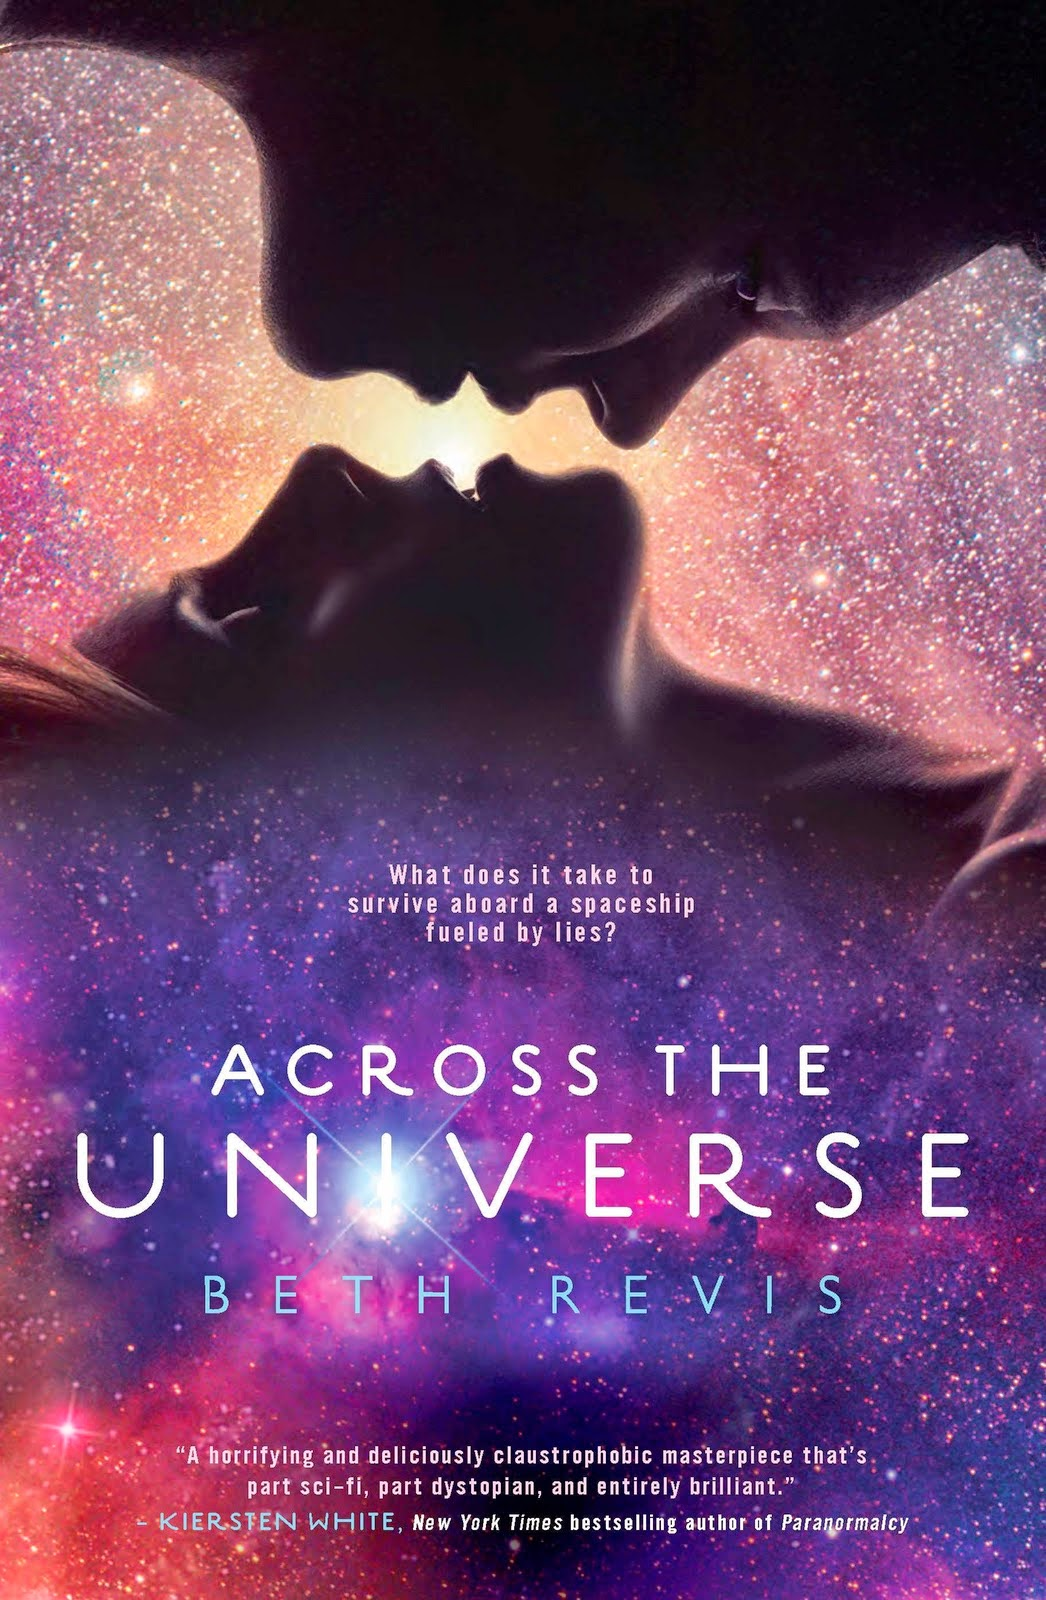 sarahsreviews sarah's reviews book review across the universe trilogy by beth revis cover hardcover old sci-fi science fiction ya young adult romance